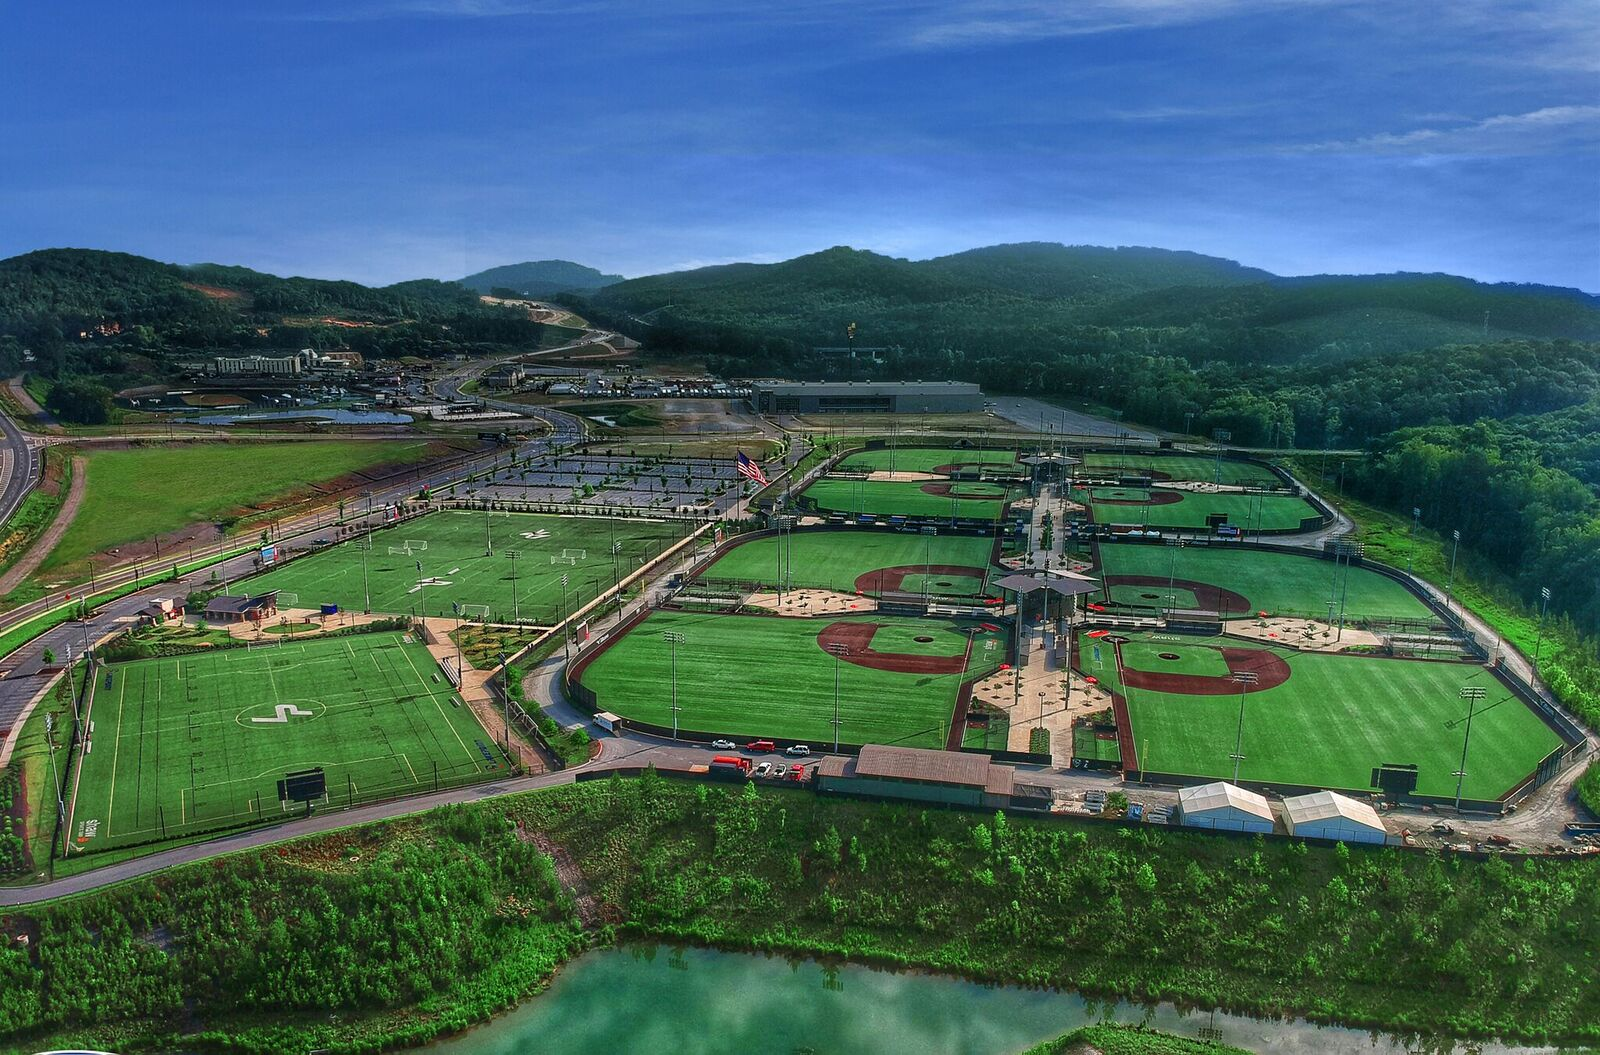 A new partnership will turn LakePoint Sports into a 'smart